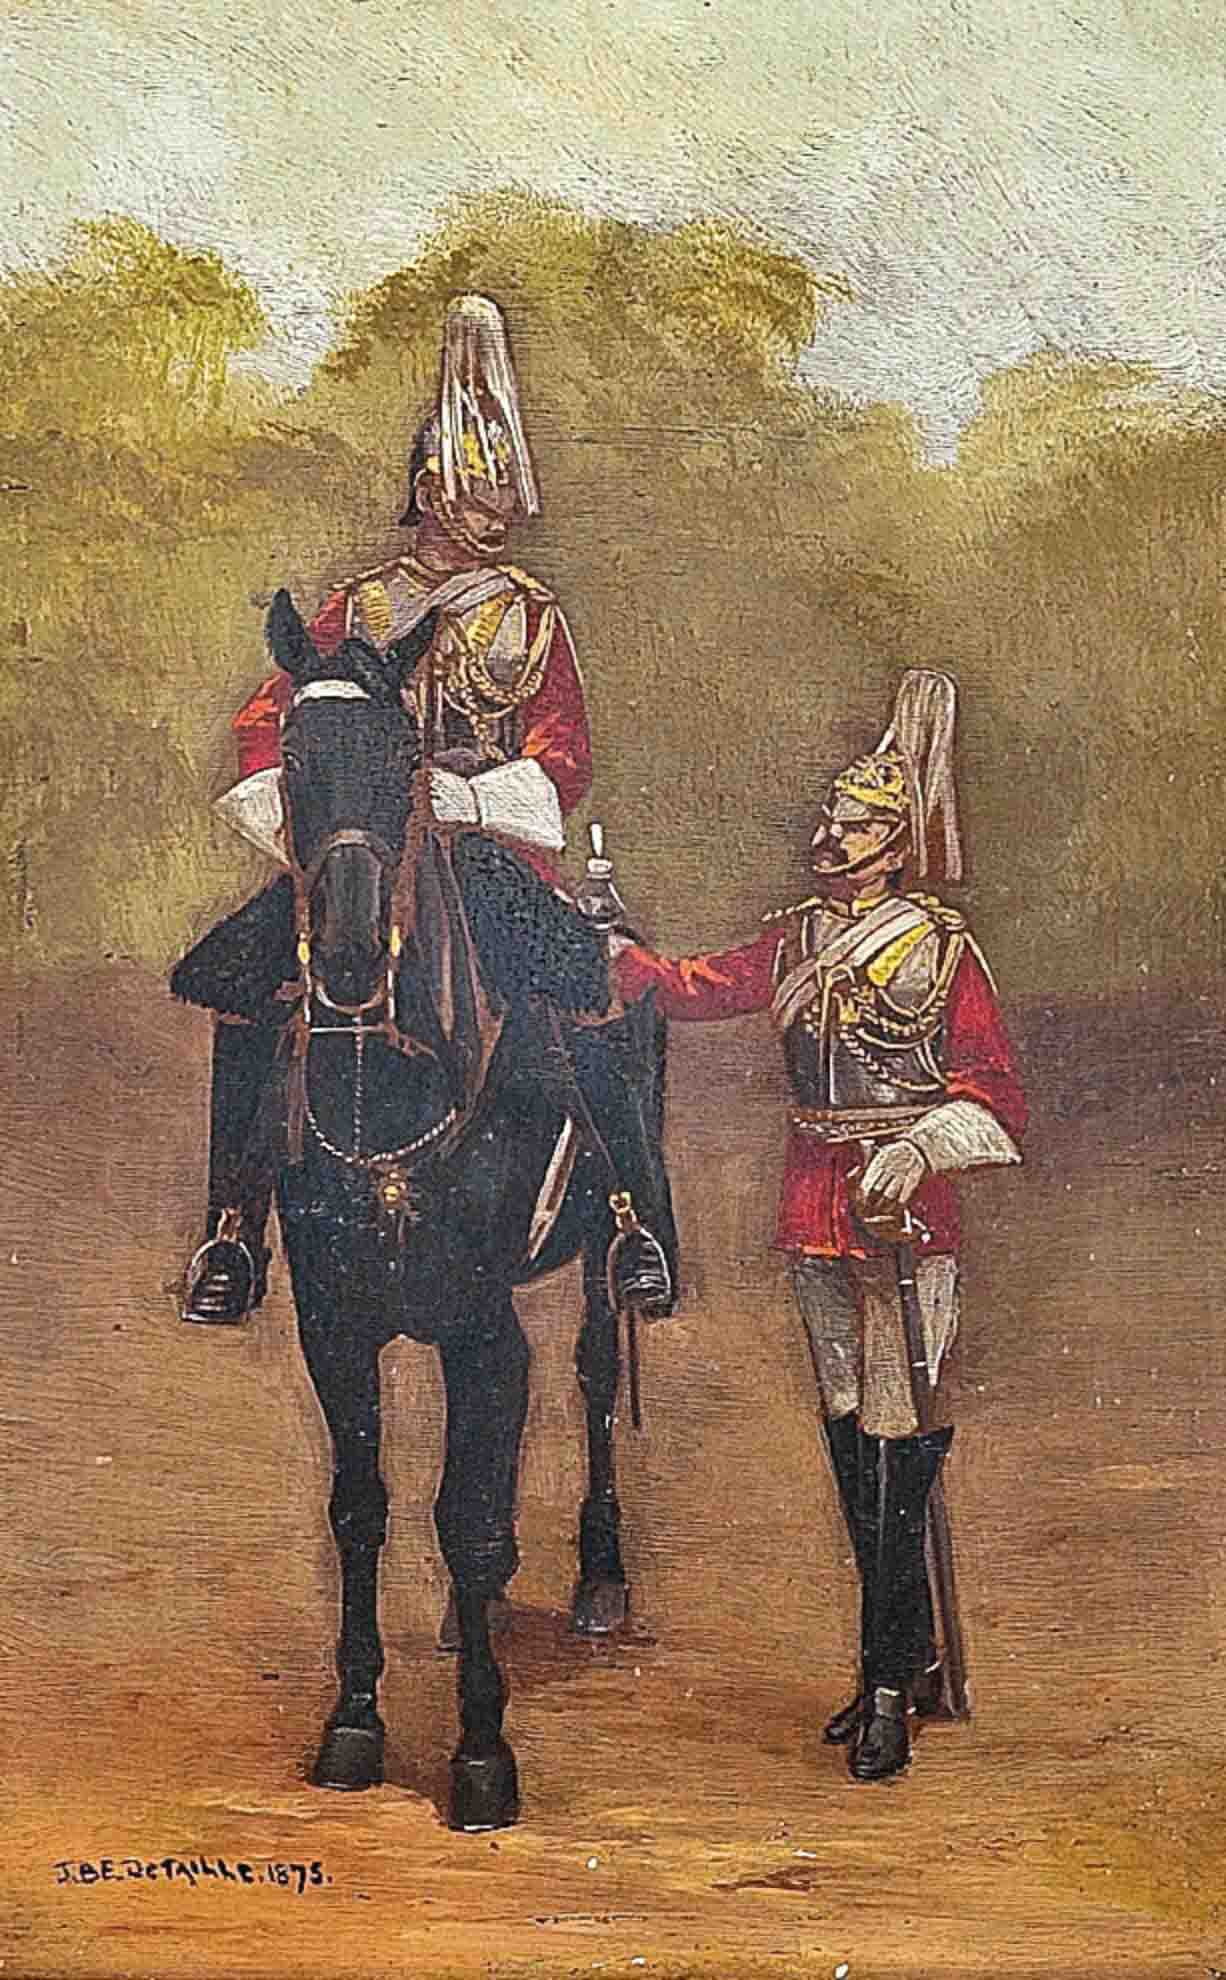 The King's horseguard; and The conversation between the guards